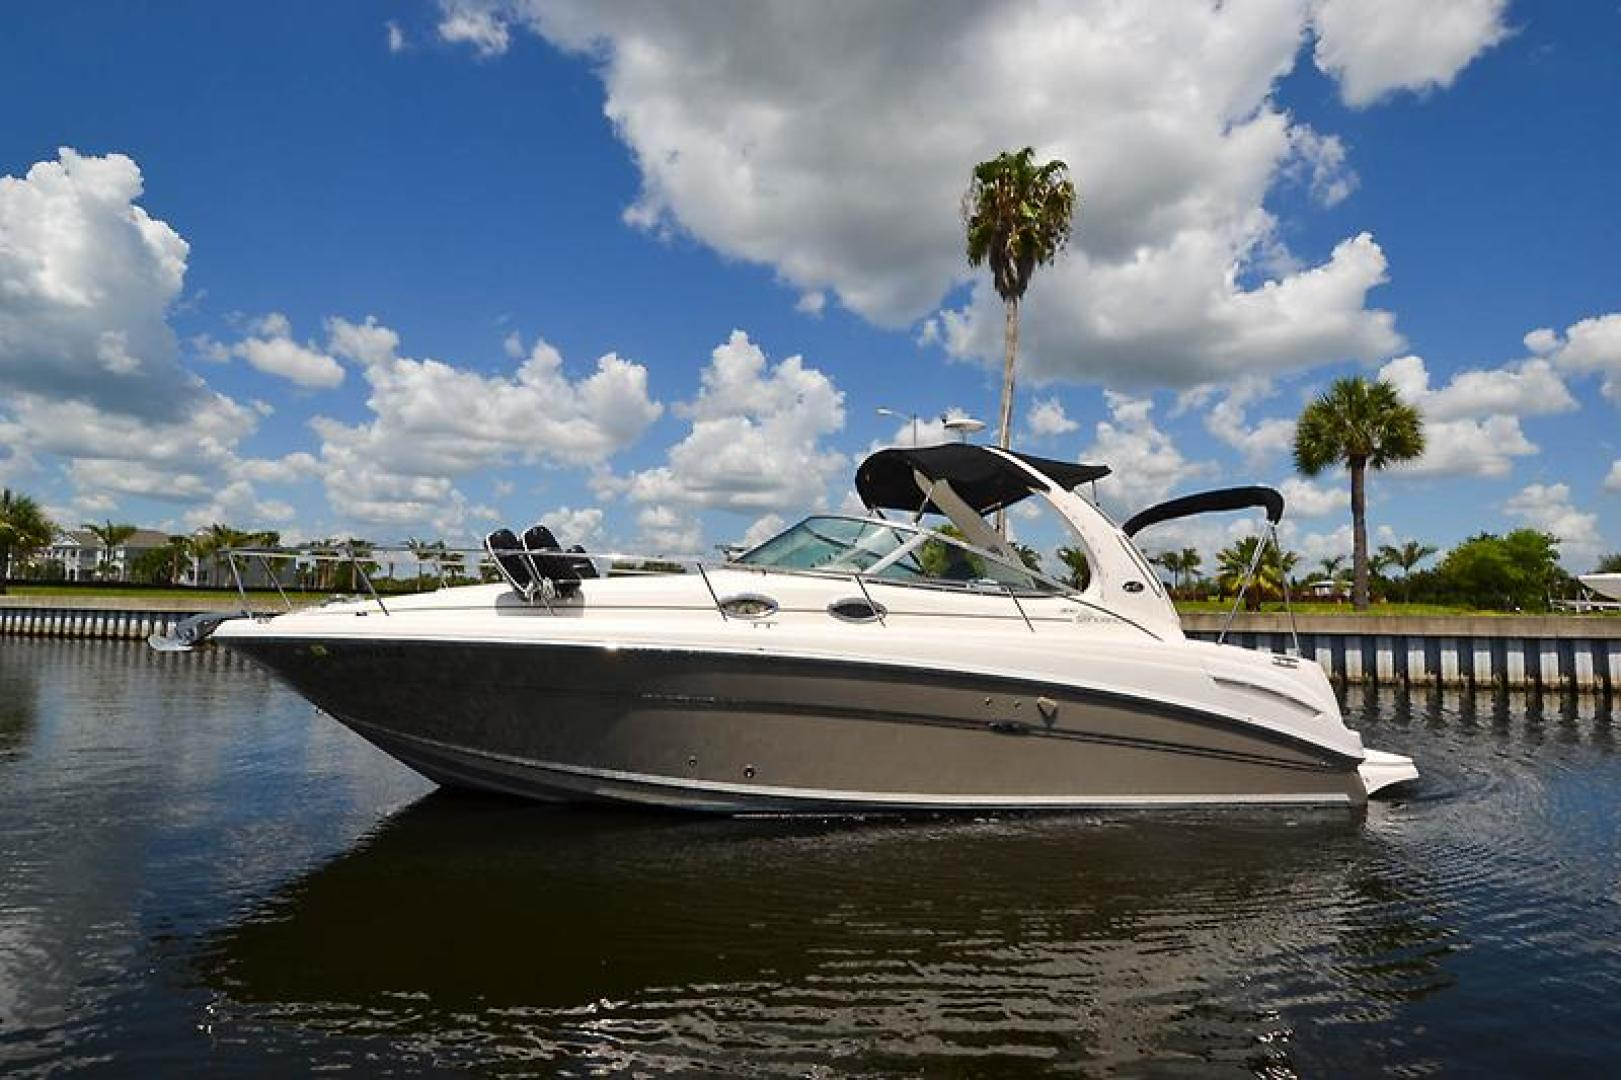 2006 Sea Ray 300 Sundancer-21-2.jpg